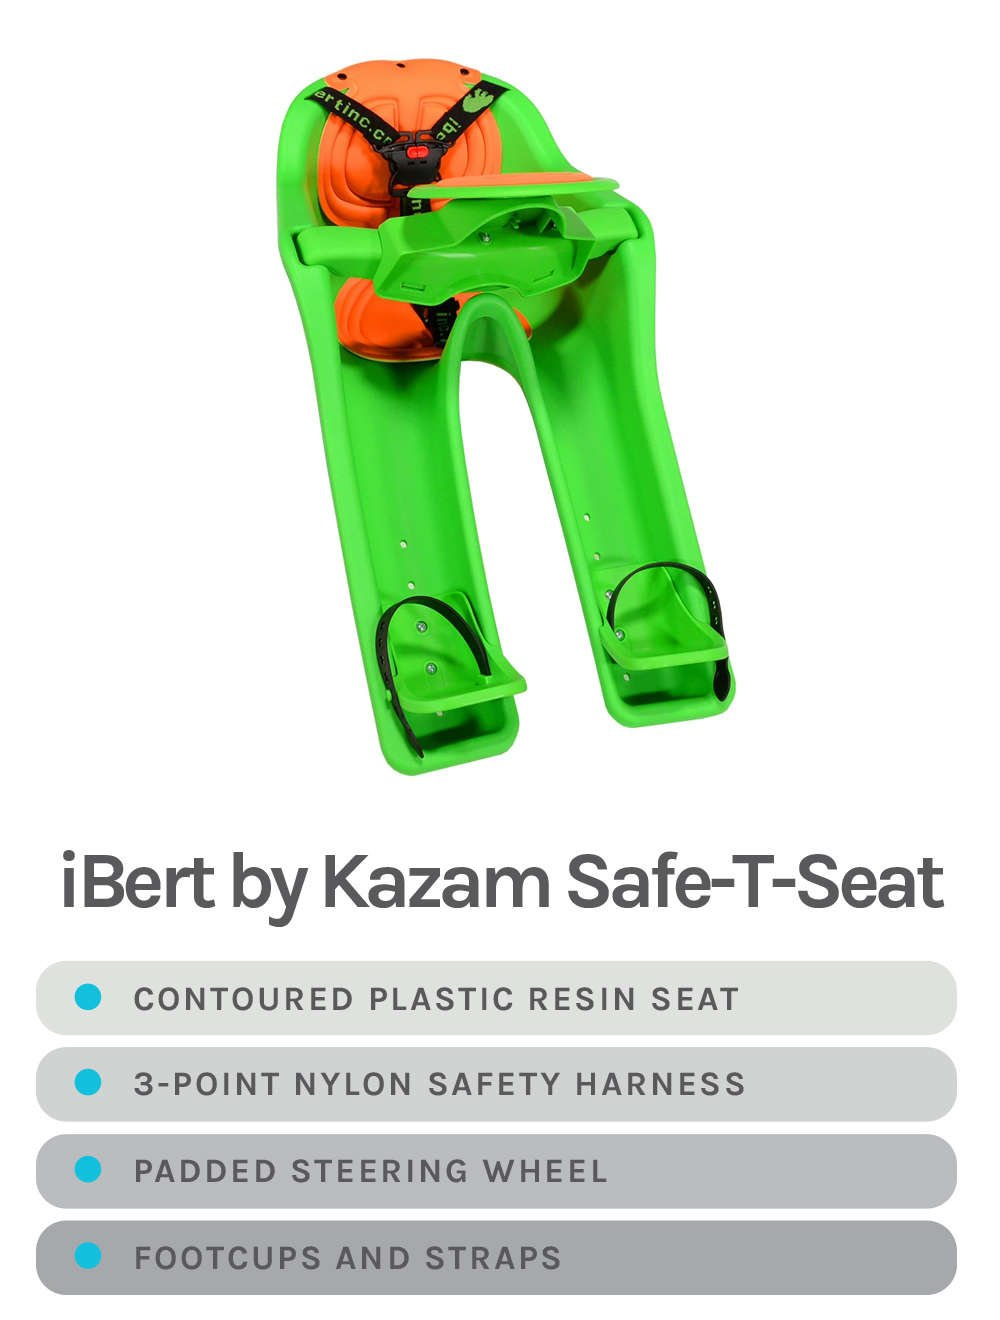 Green iBert by Kazam Safe-T-Seat - Specs - Contoured plastic resin seat, 3-point nylon safety harness, padded steering wheel, footcups & straps - Available Colors in Green, Pink, and Red